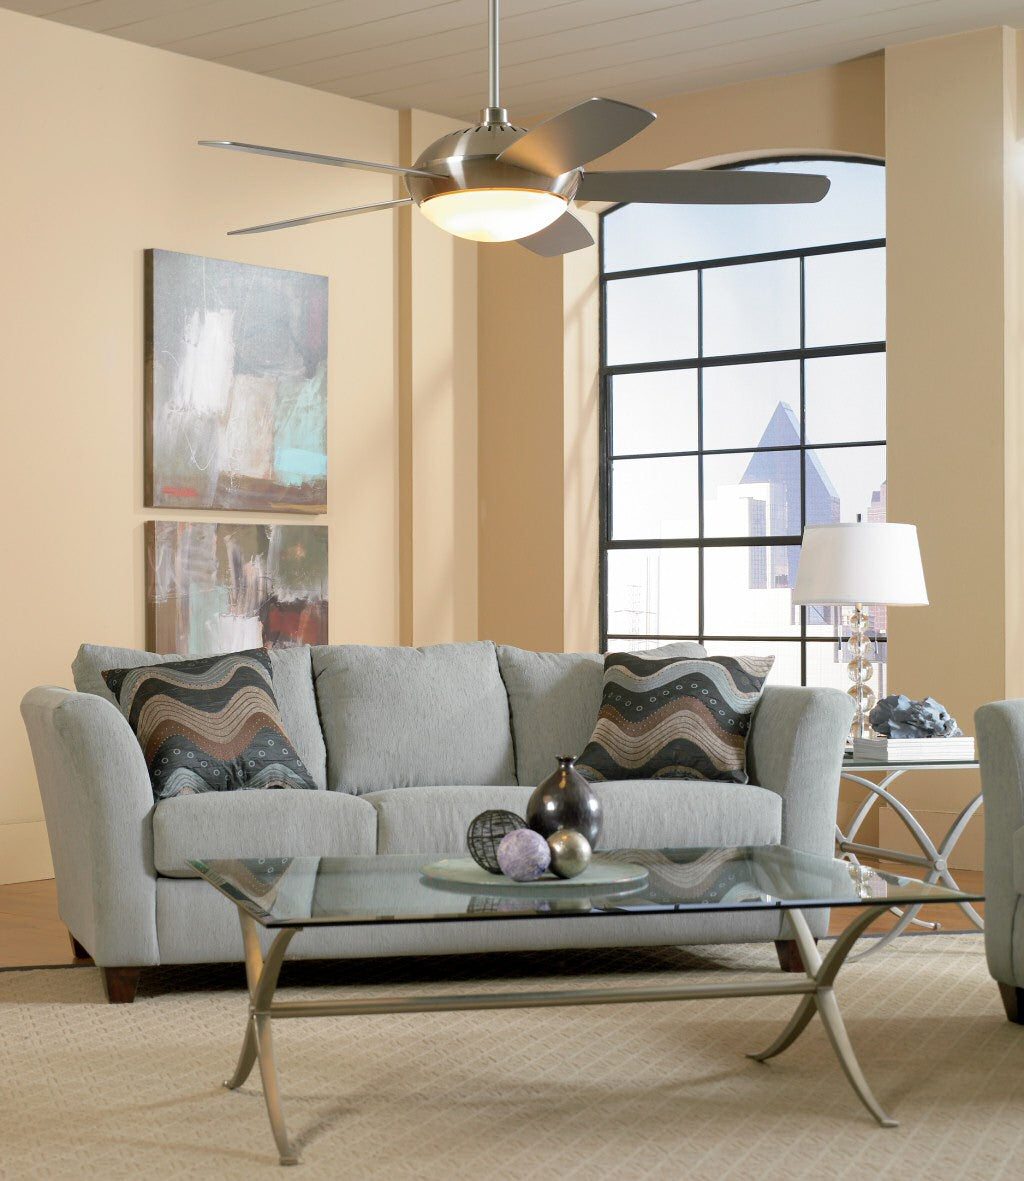 living room ceiling fan with lights